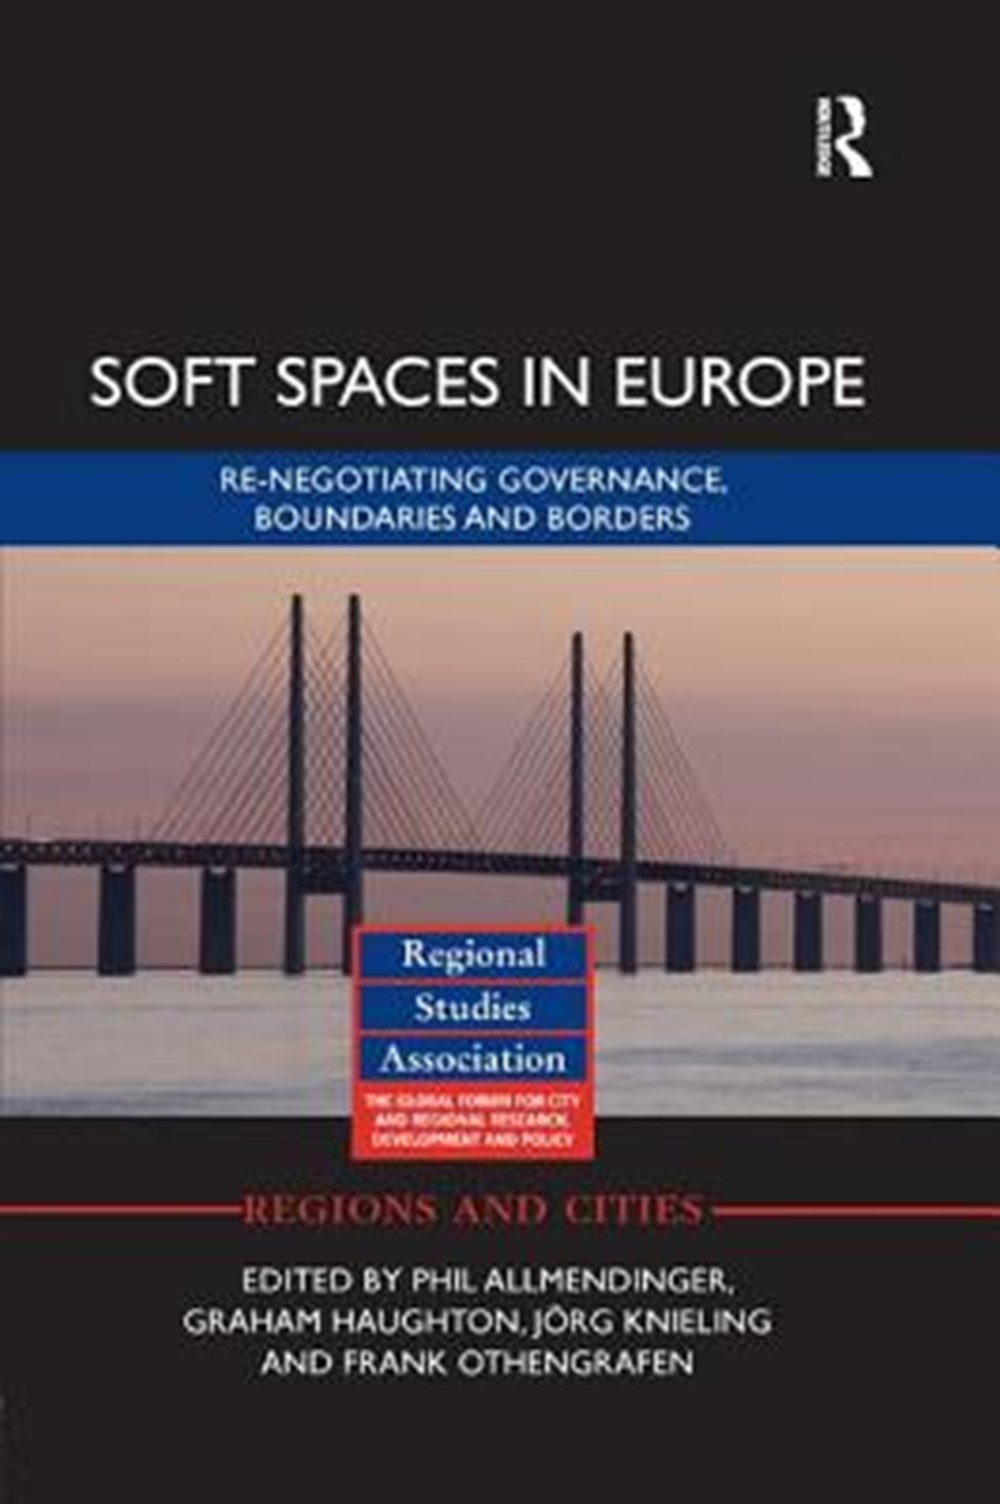 Soft Spaces in Europe Re-Negotiating Governance, Boundaries and Borders